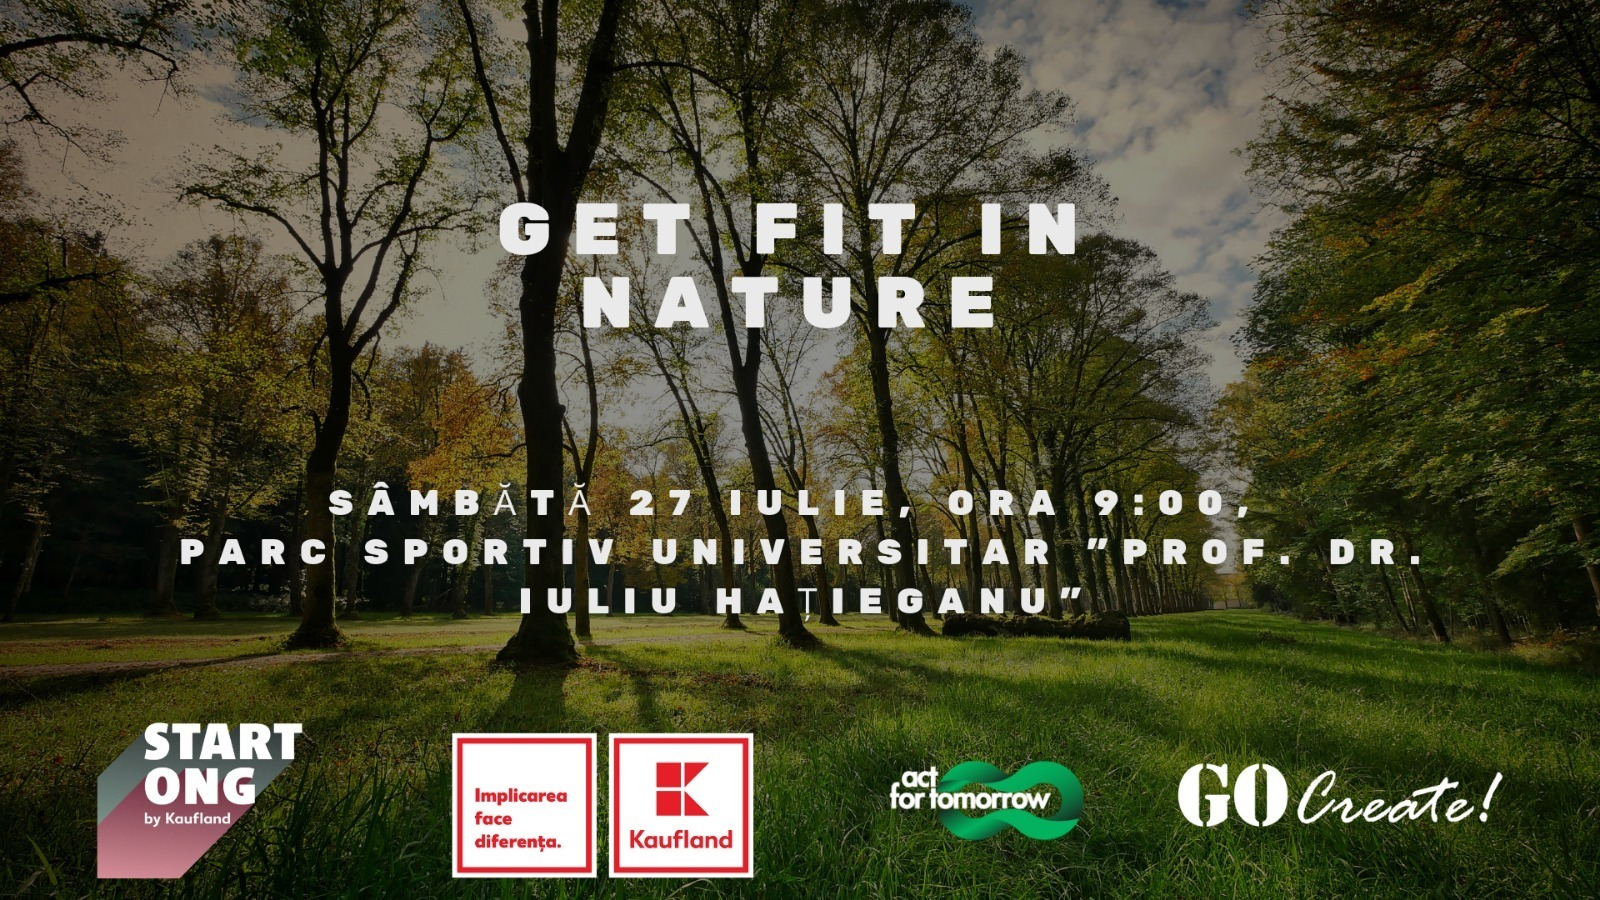 Get fit in nature!